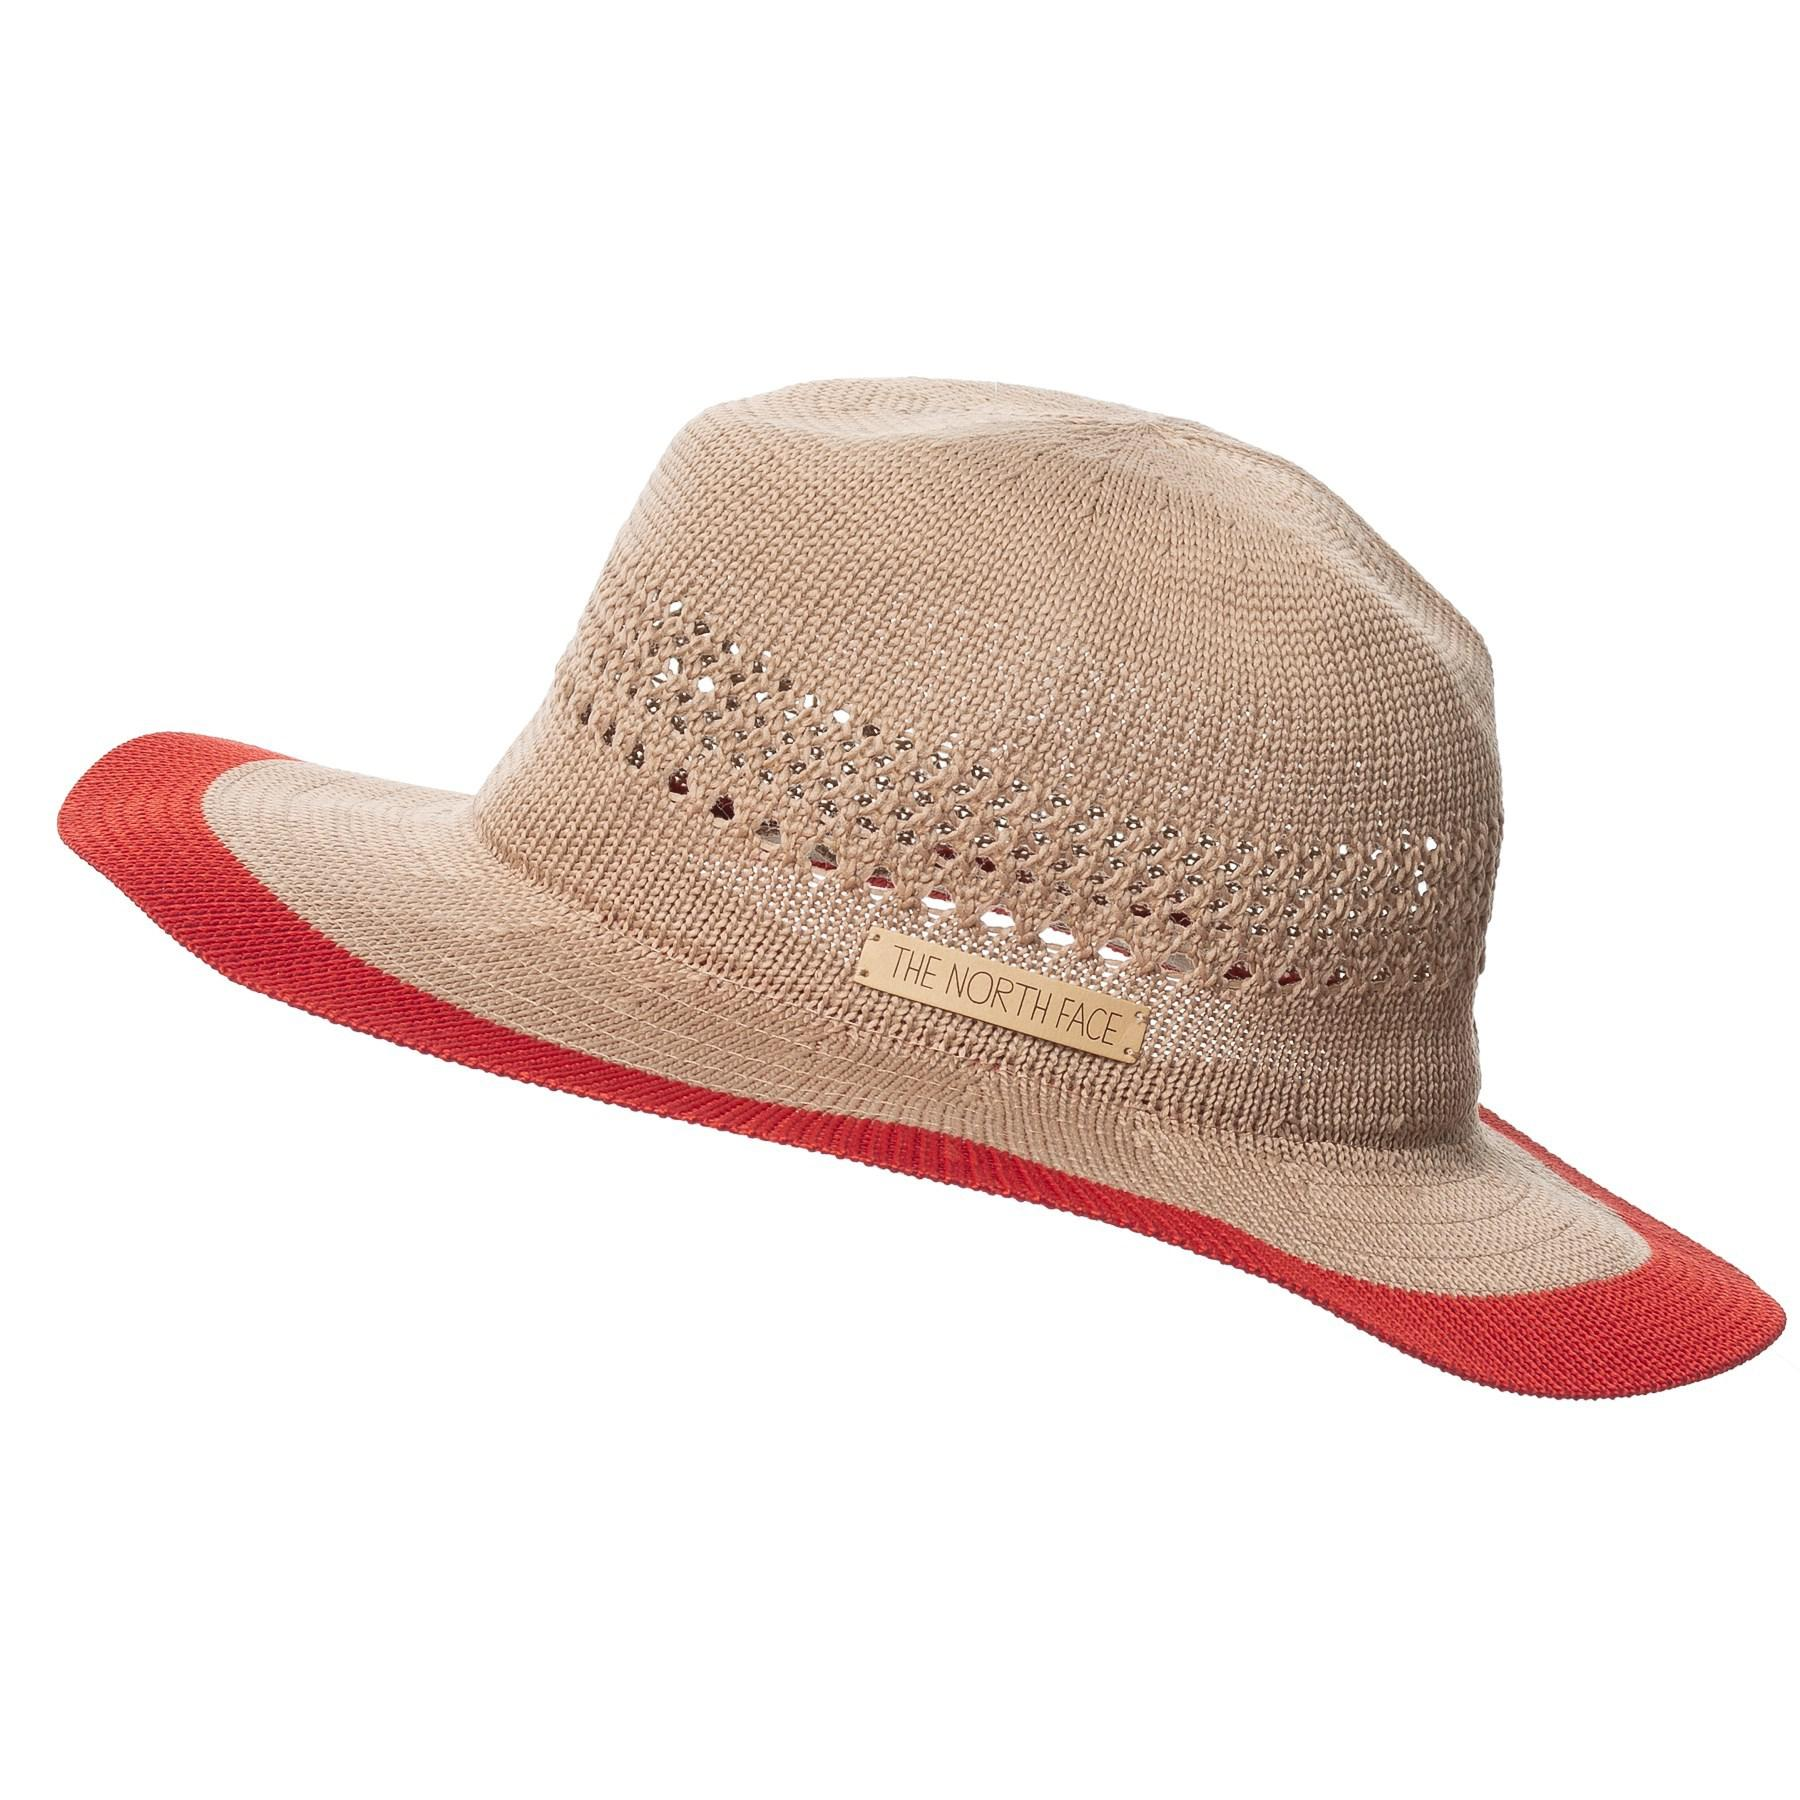 fcfe2a03c1a Gallery. Previously sold at  Sierra · Women s Sun Hats ...